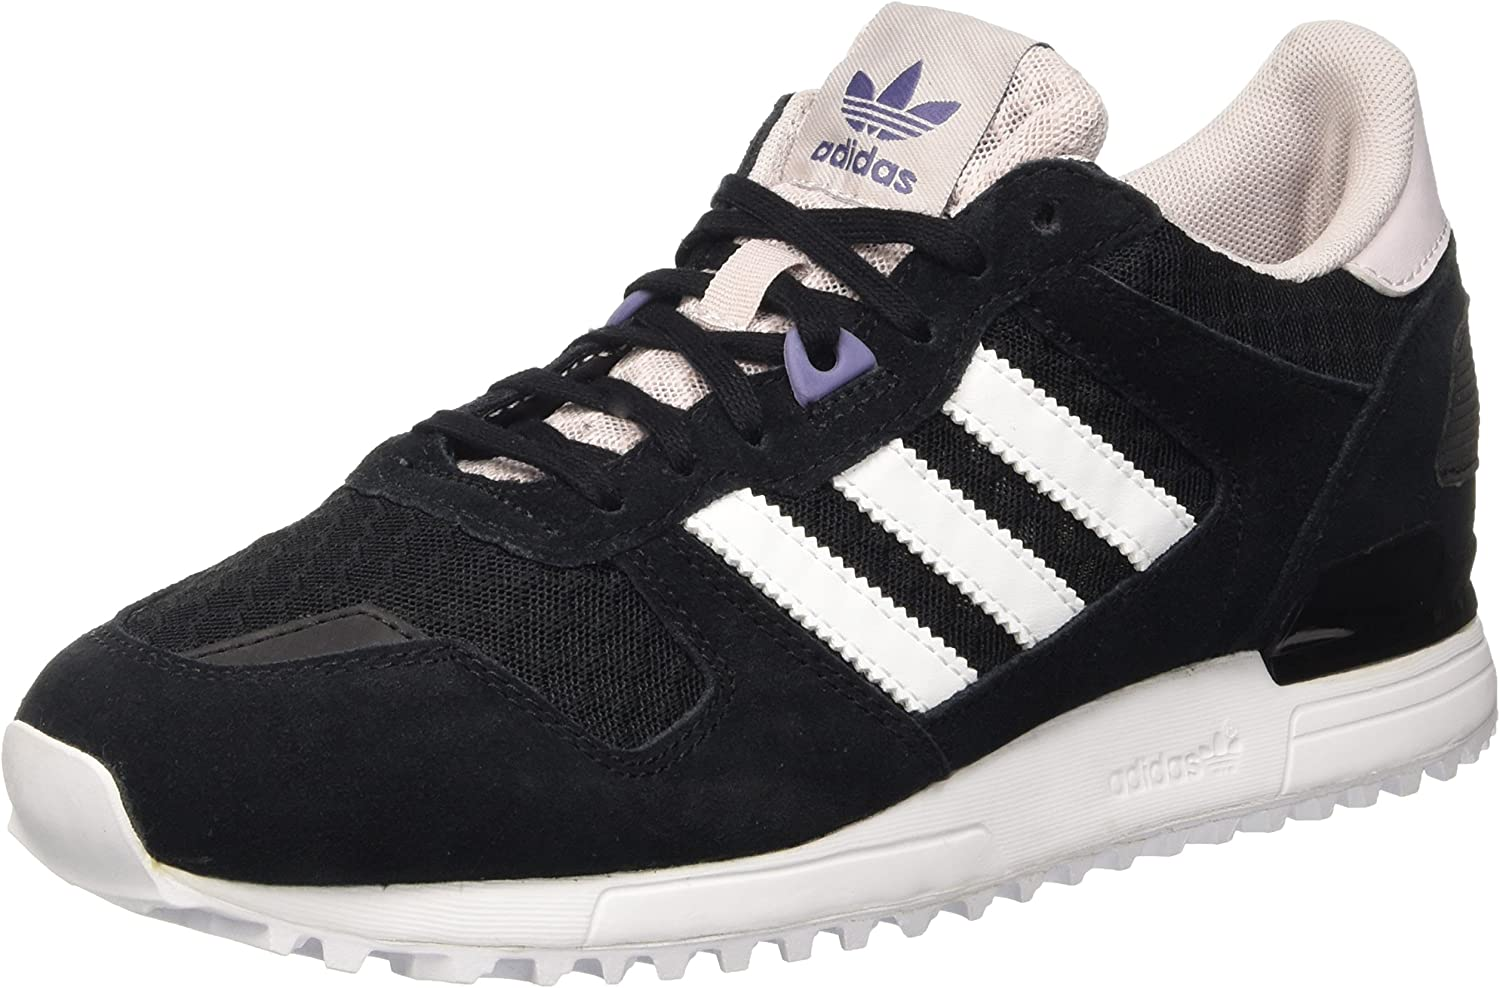 Adidas Women's Zx 700 Trainers, bluee